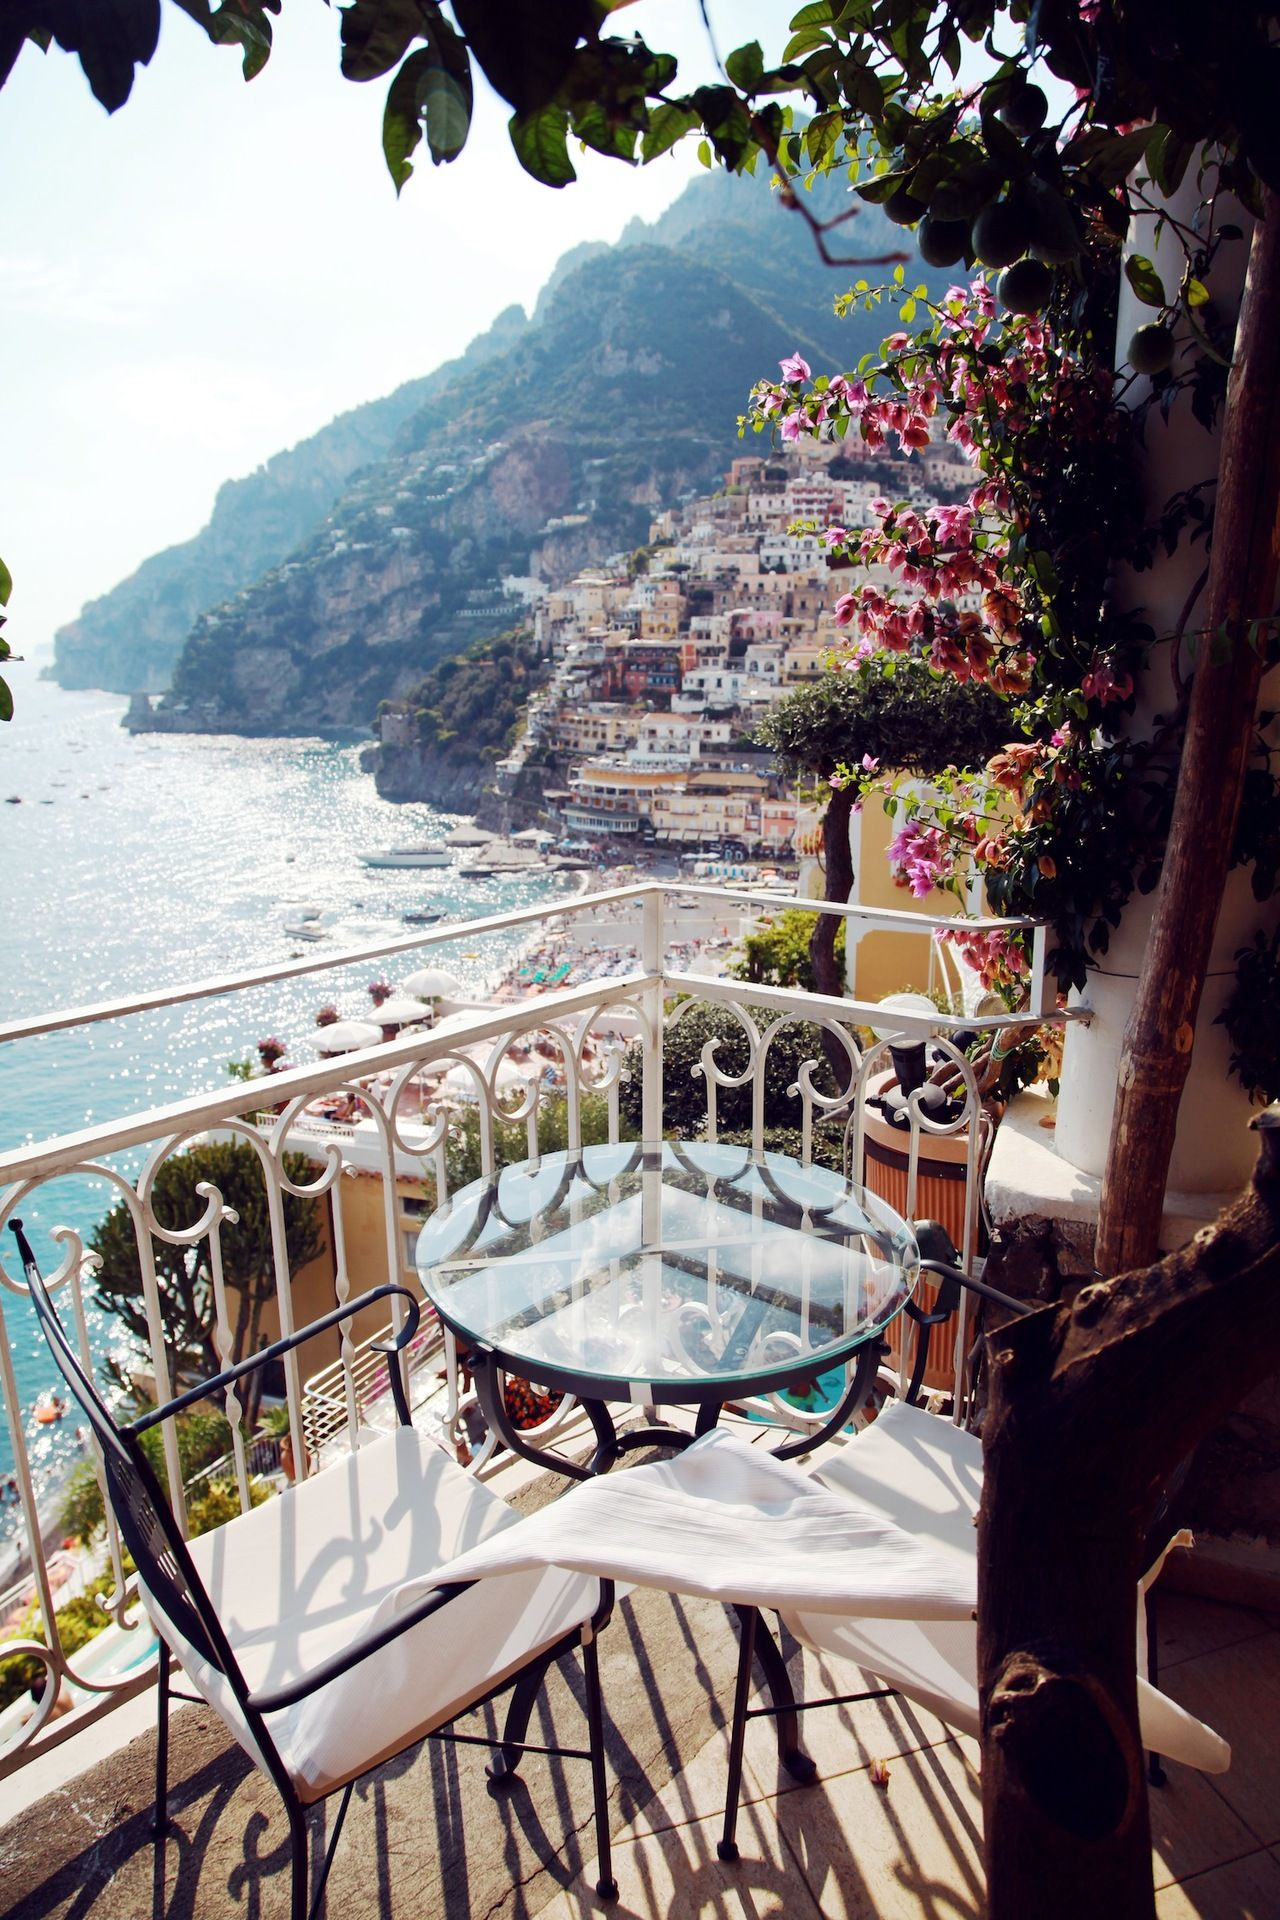 To stay in a room with a balcony like this in Positano on